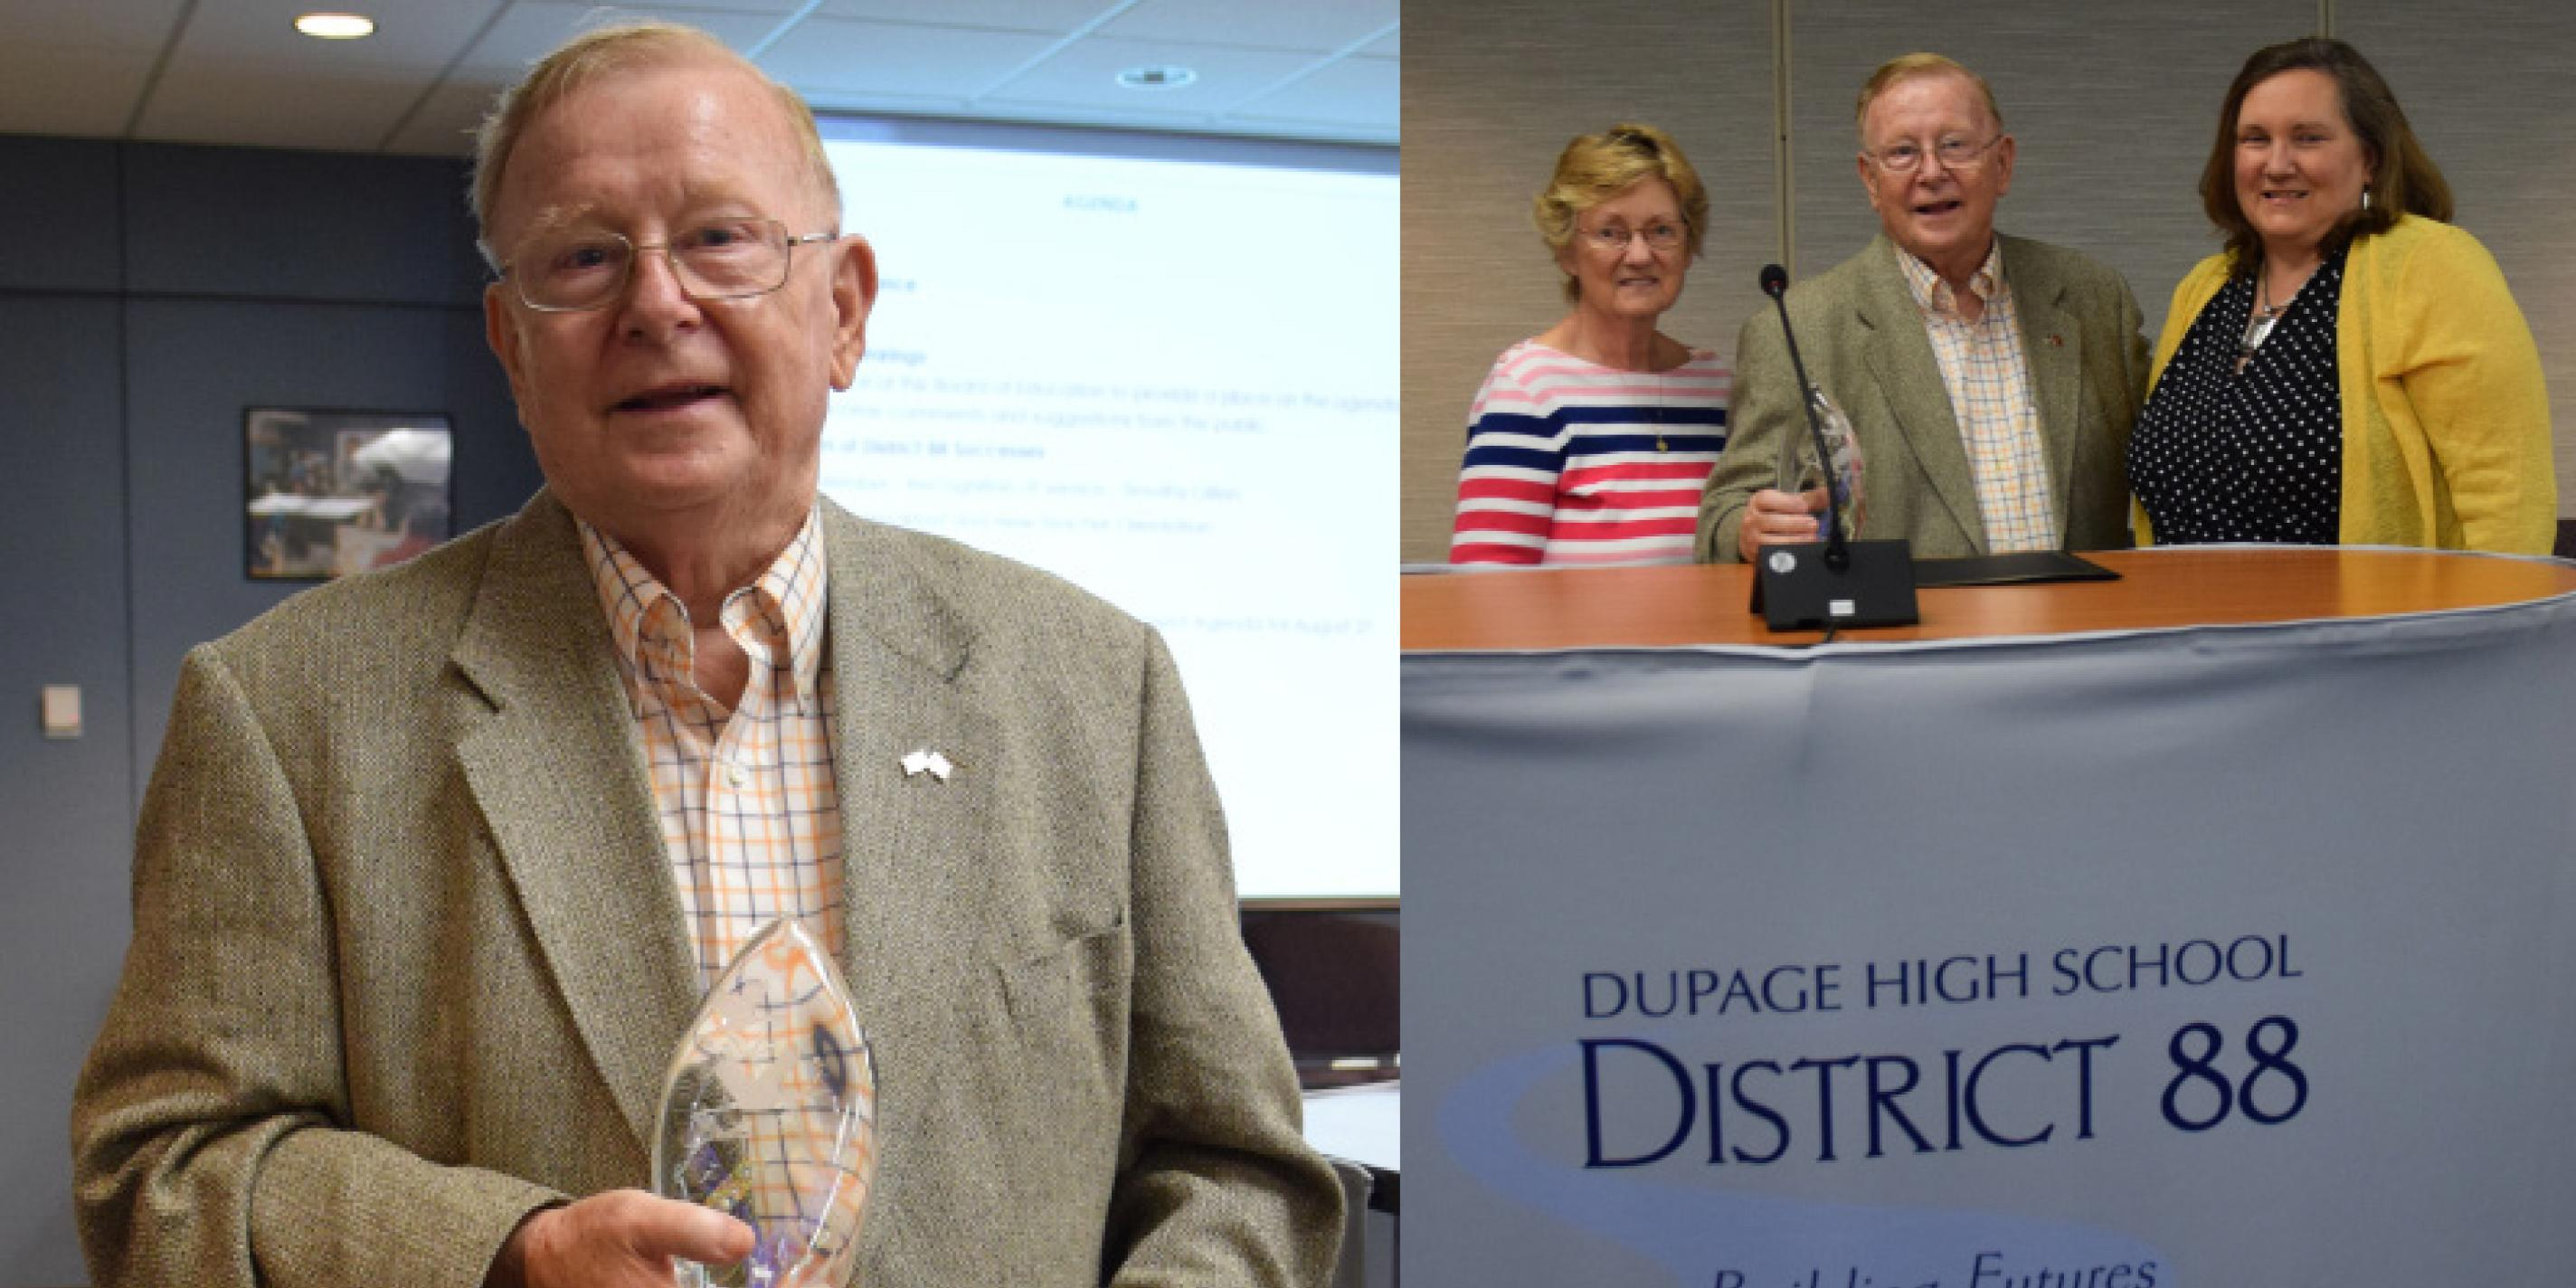 District 88 recognizes former Board of Education member for years of service